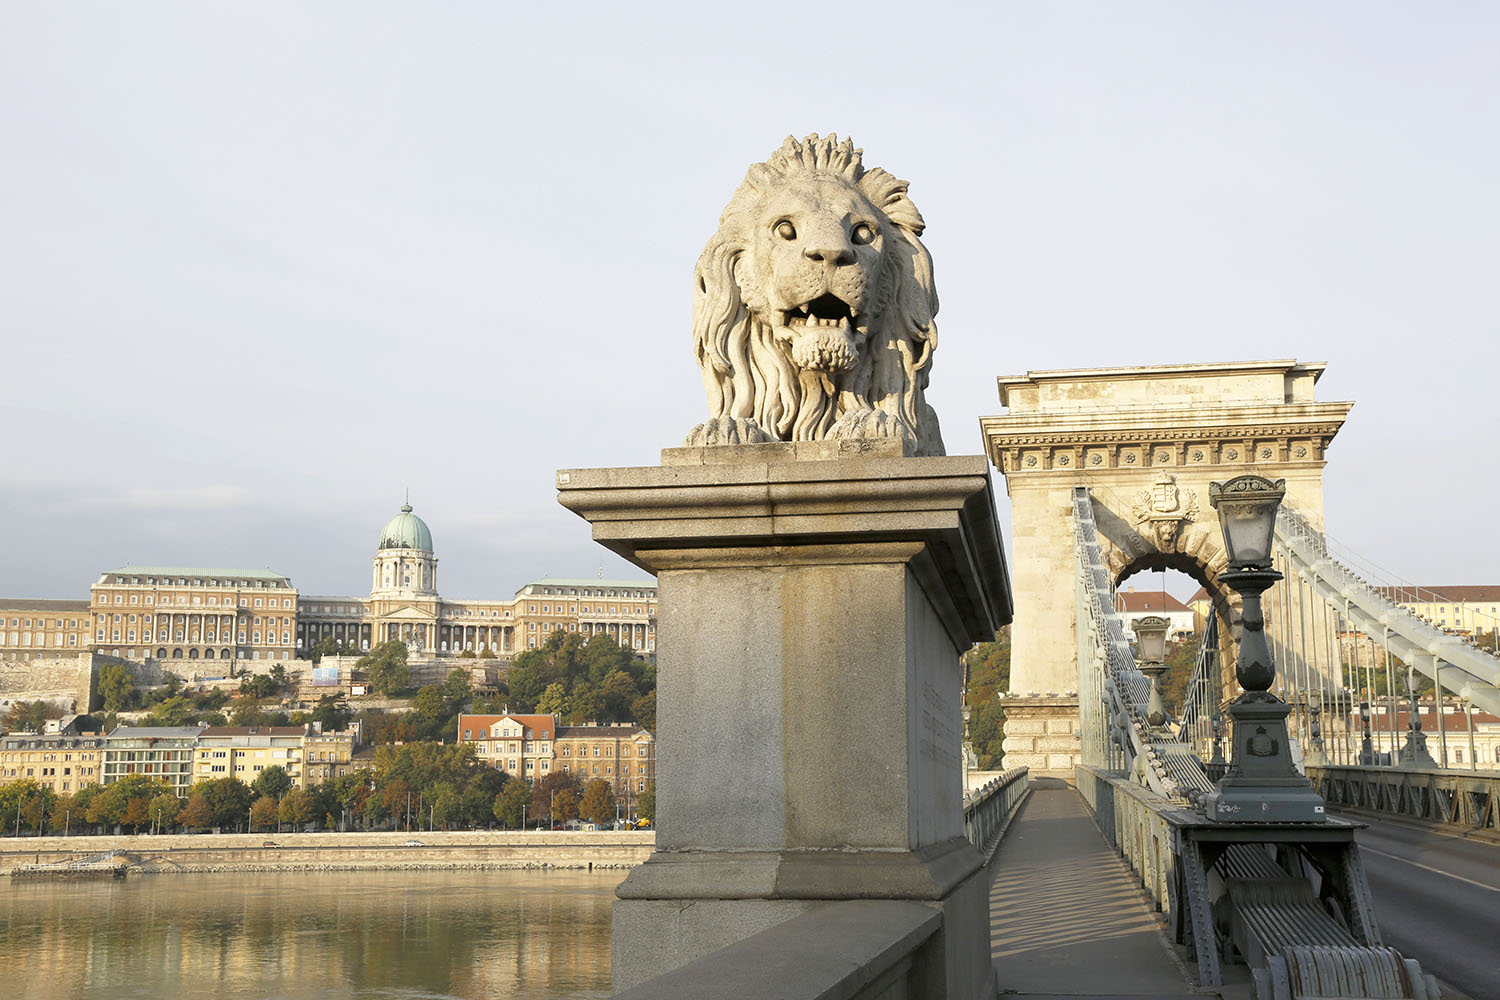 The Lion at the Chain Bridge